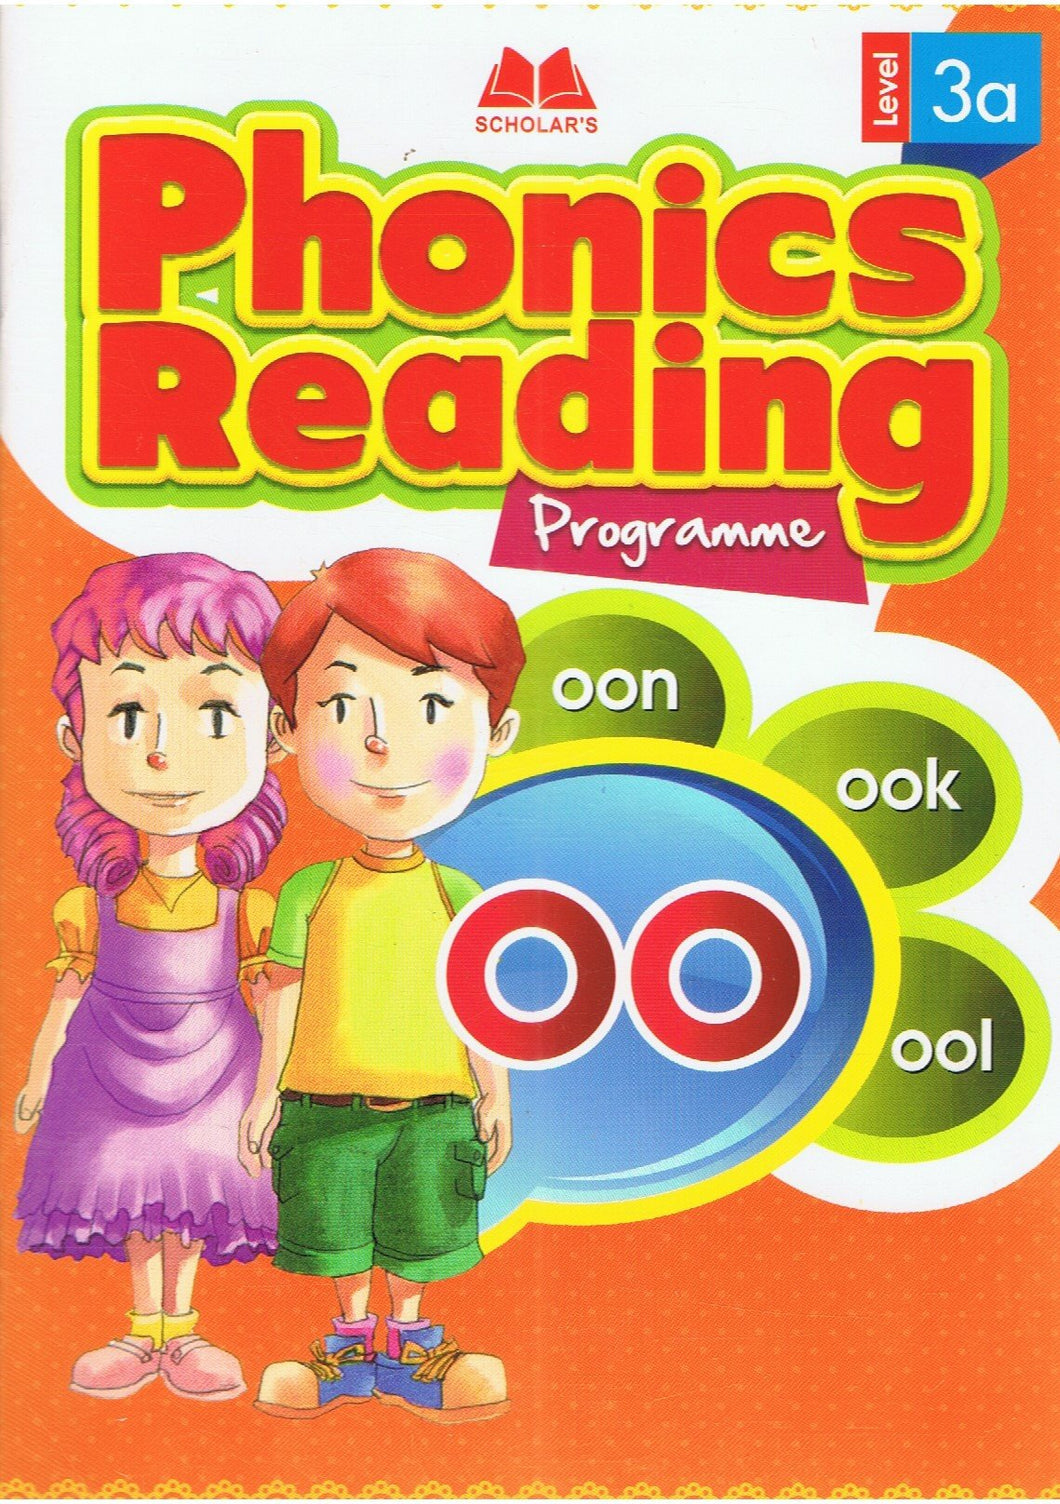 Edukid Publication-Phonics Reading Programme(3a)-9789833517763-BukuDBP.com